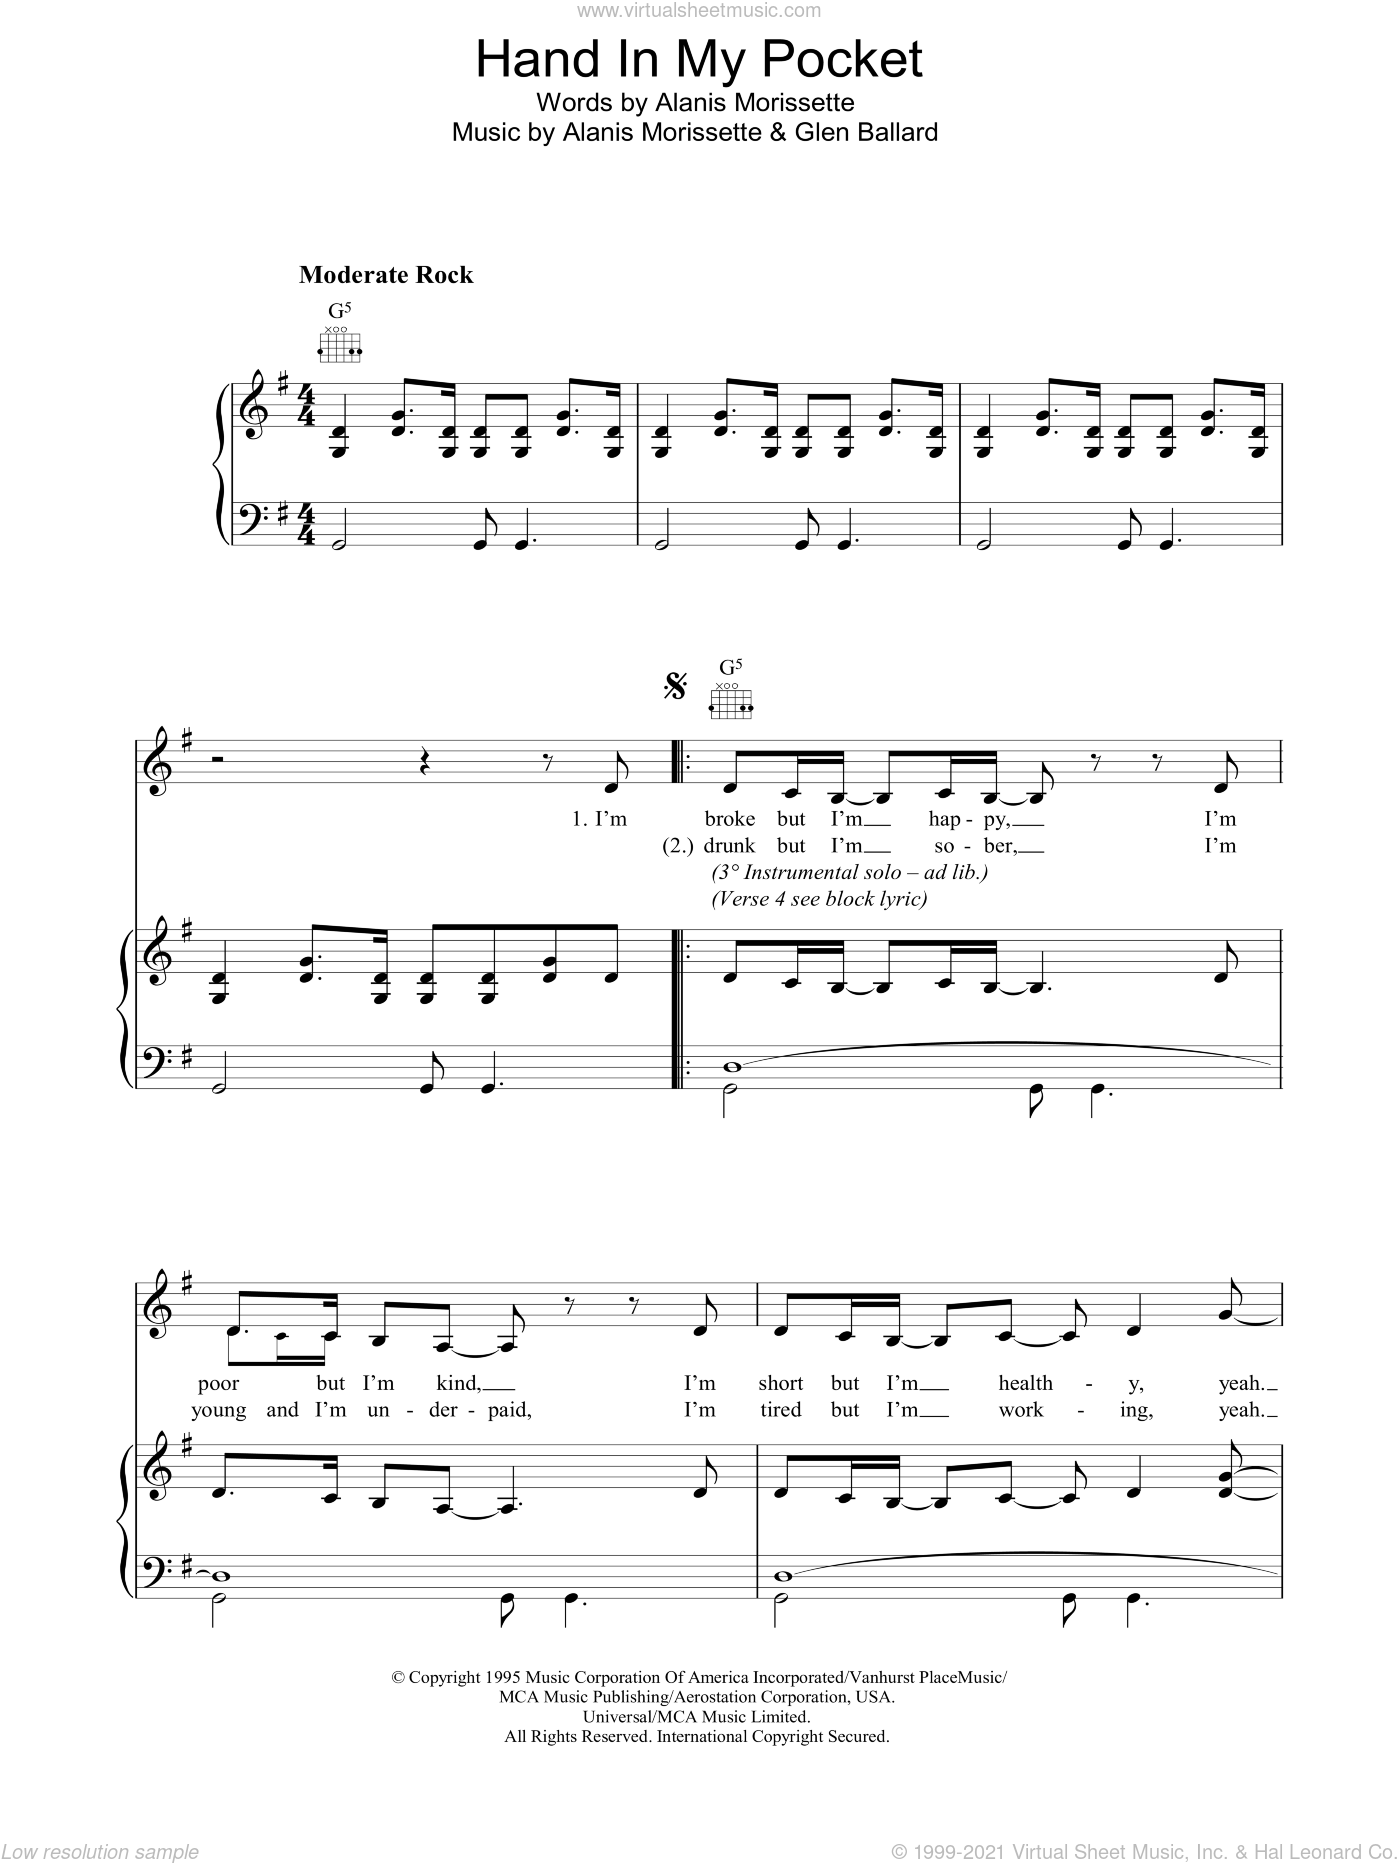 Hand In My Pocket sheet music for voice, piano or guitar by Glen Ballard and Alanis Morissette. Score Image Preview.